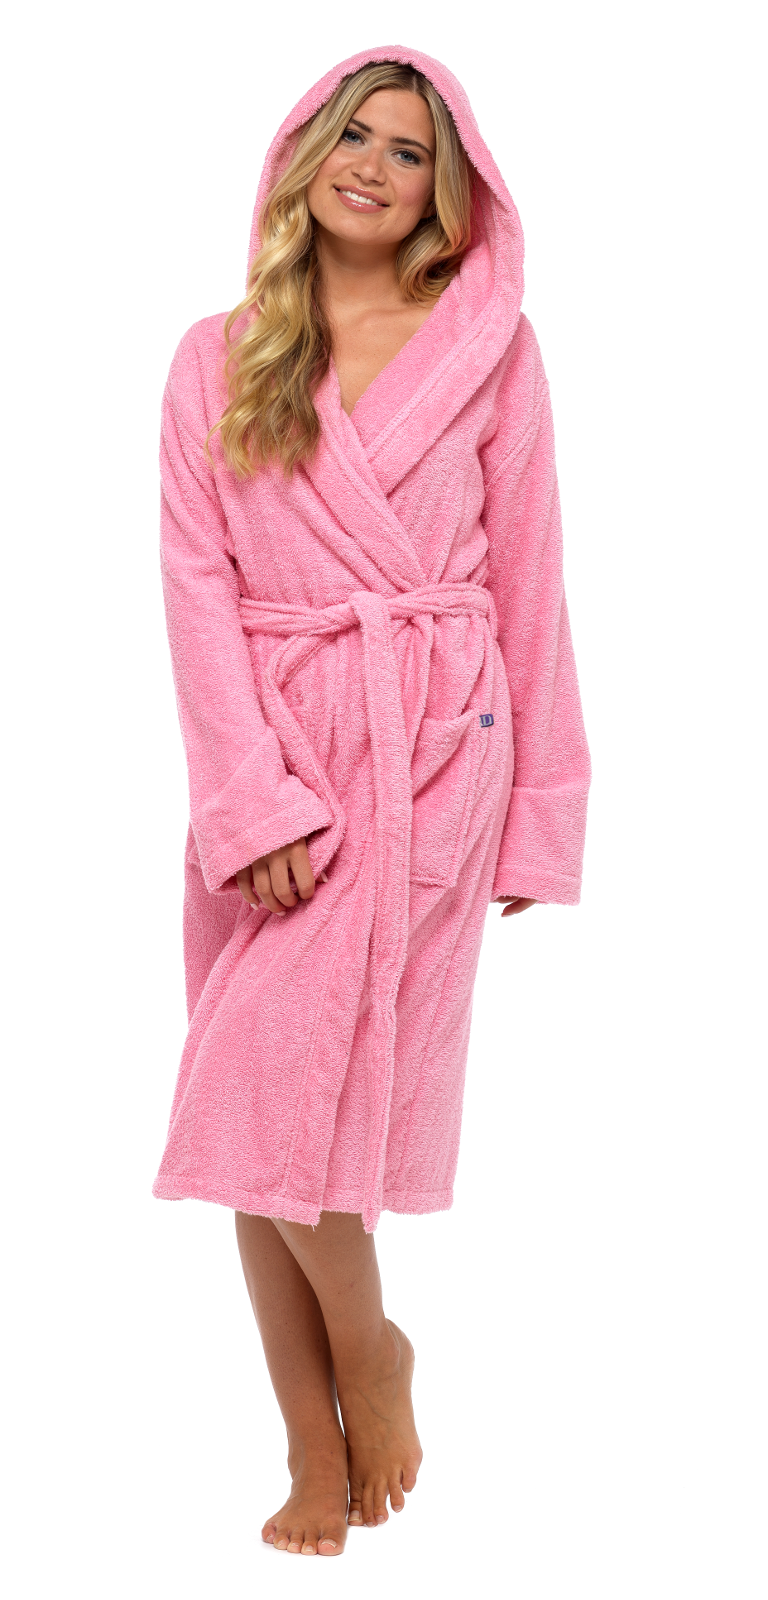 f69f10a247 Womens Pure 100% Cotton Robe Luxury Toweling Hooded Bath Robes ...